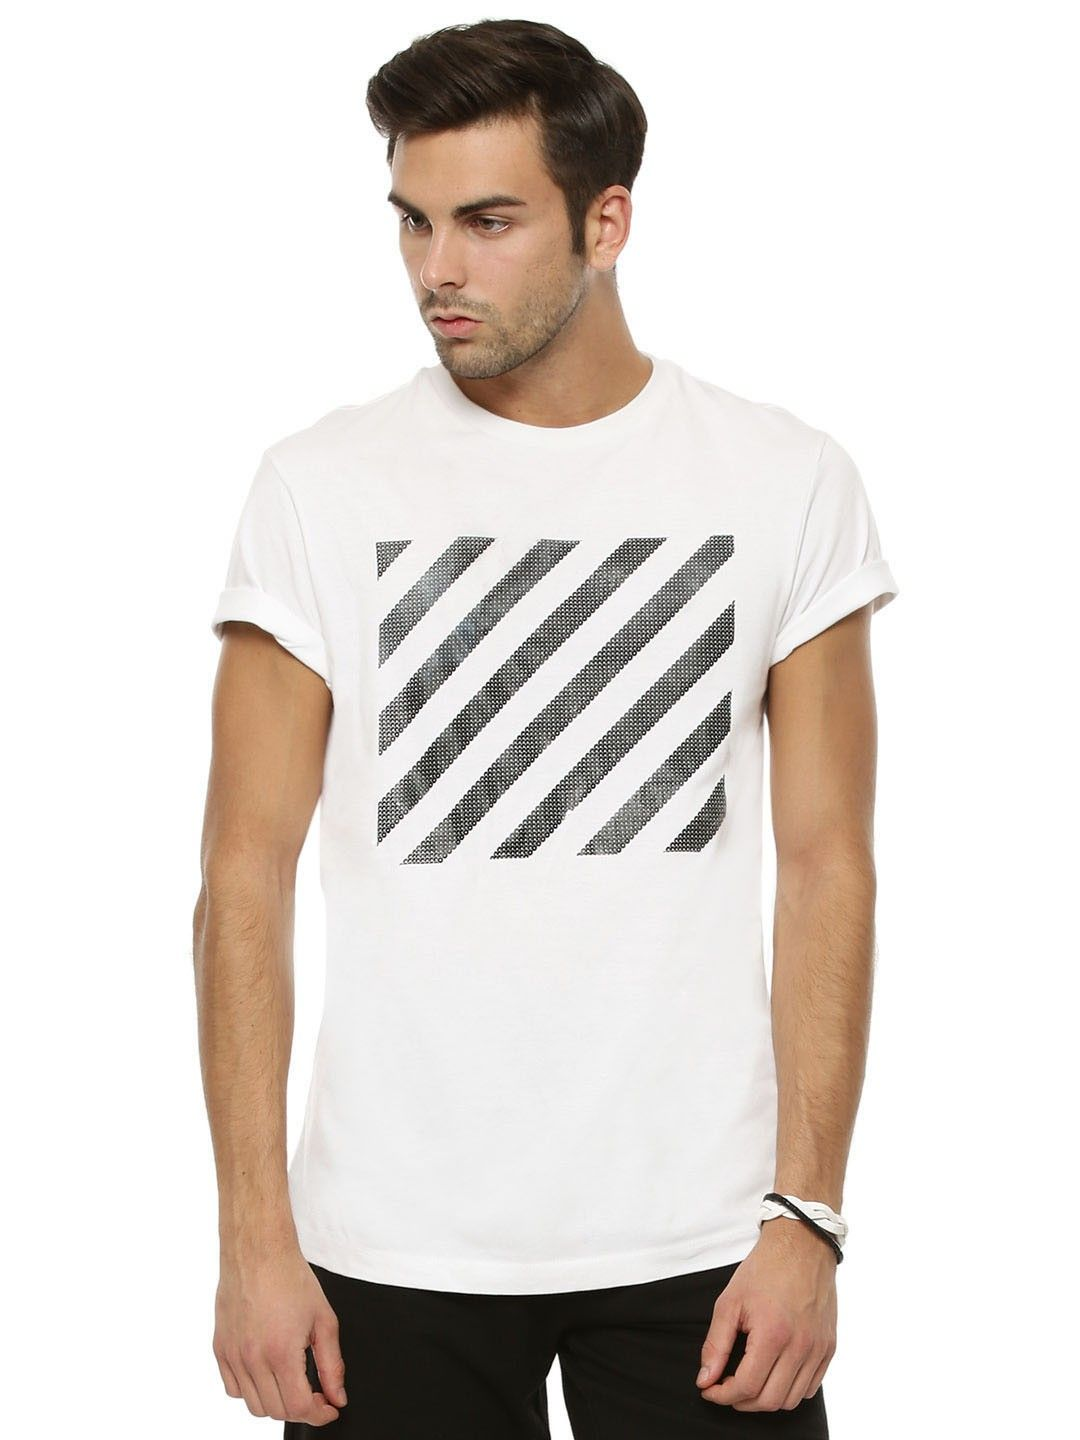 c1cfdb451 Buy KOOVS Sequin Print T-shirt Online at Best Price in India is Rs. 139. White  T-shirts For Men. Free Shipping, 15 day returns, Cash on Delivery.